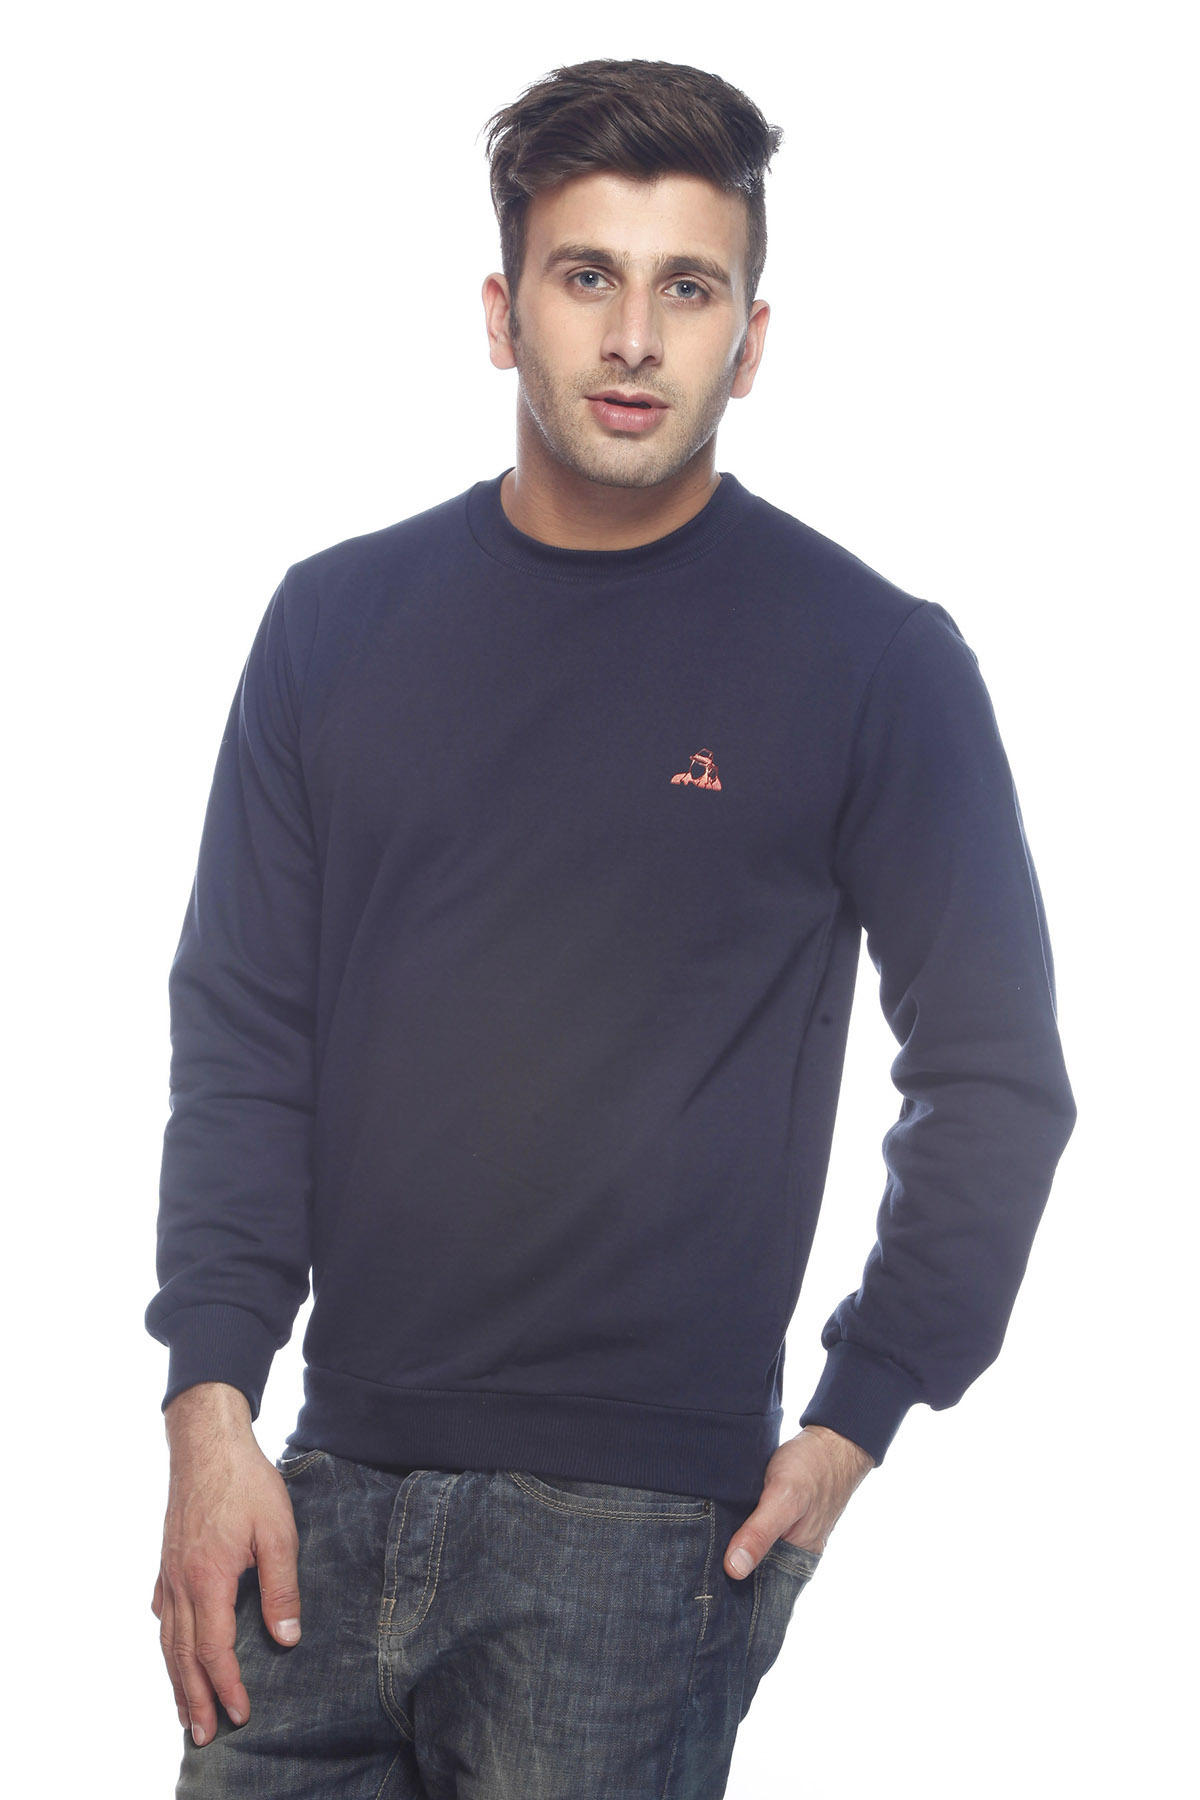 DS Solid Navy Blue Cotton Casual Sweatshirt